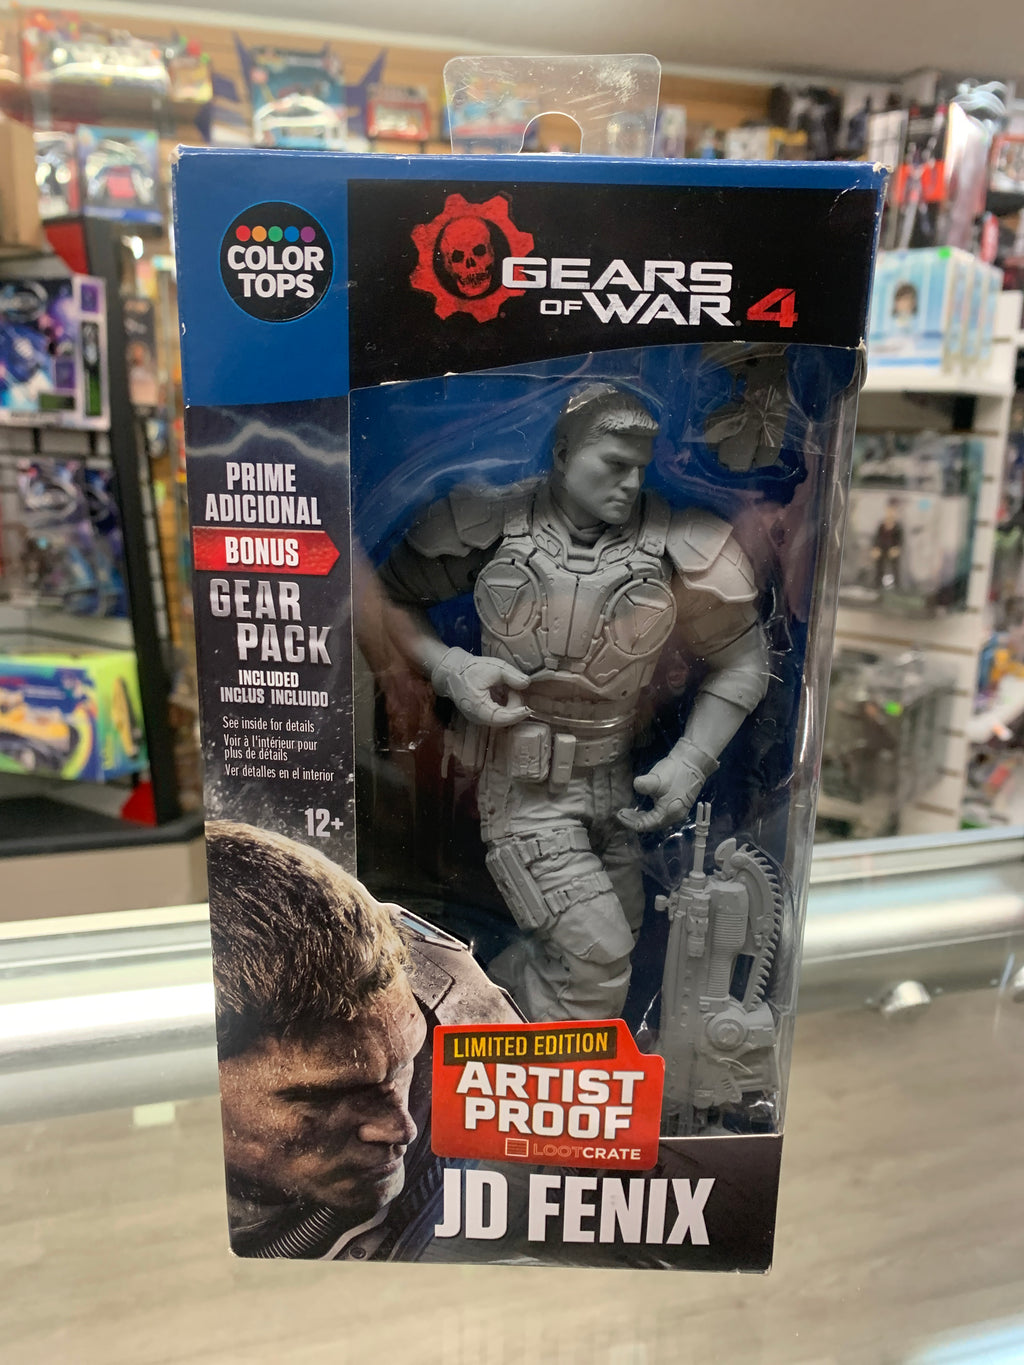 McFarlane Color Tops Gears of War Artist Proof JD Fenix